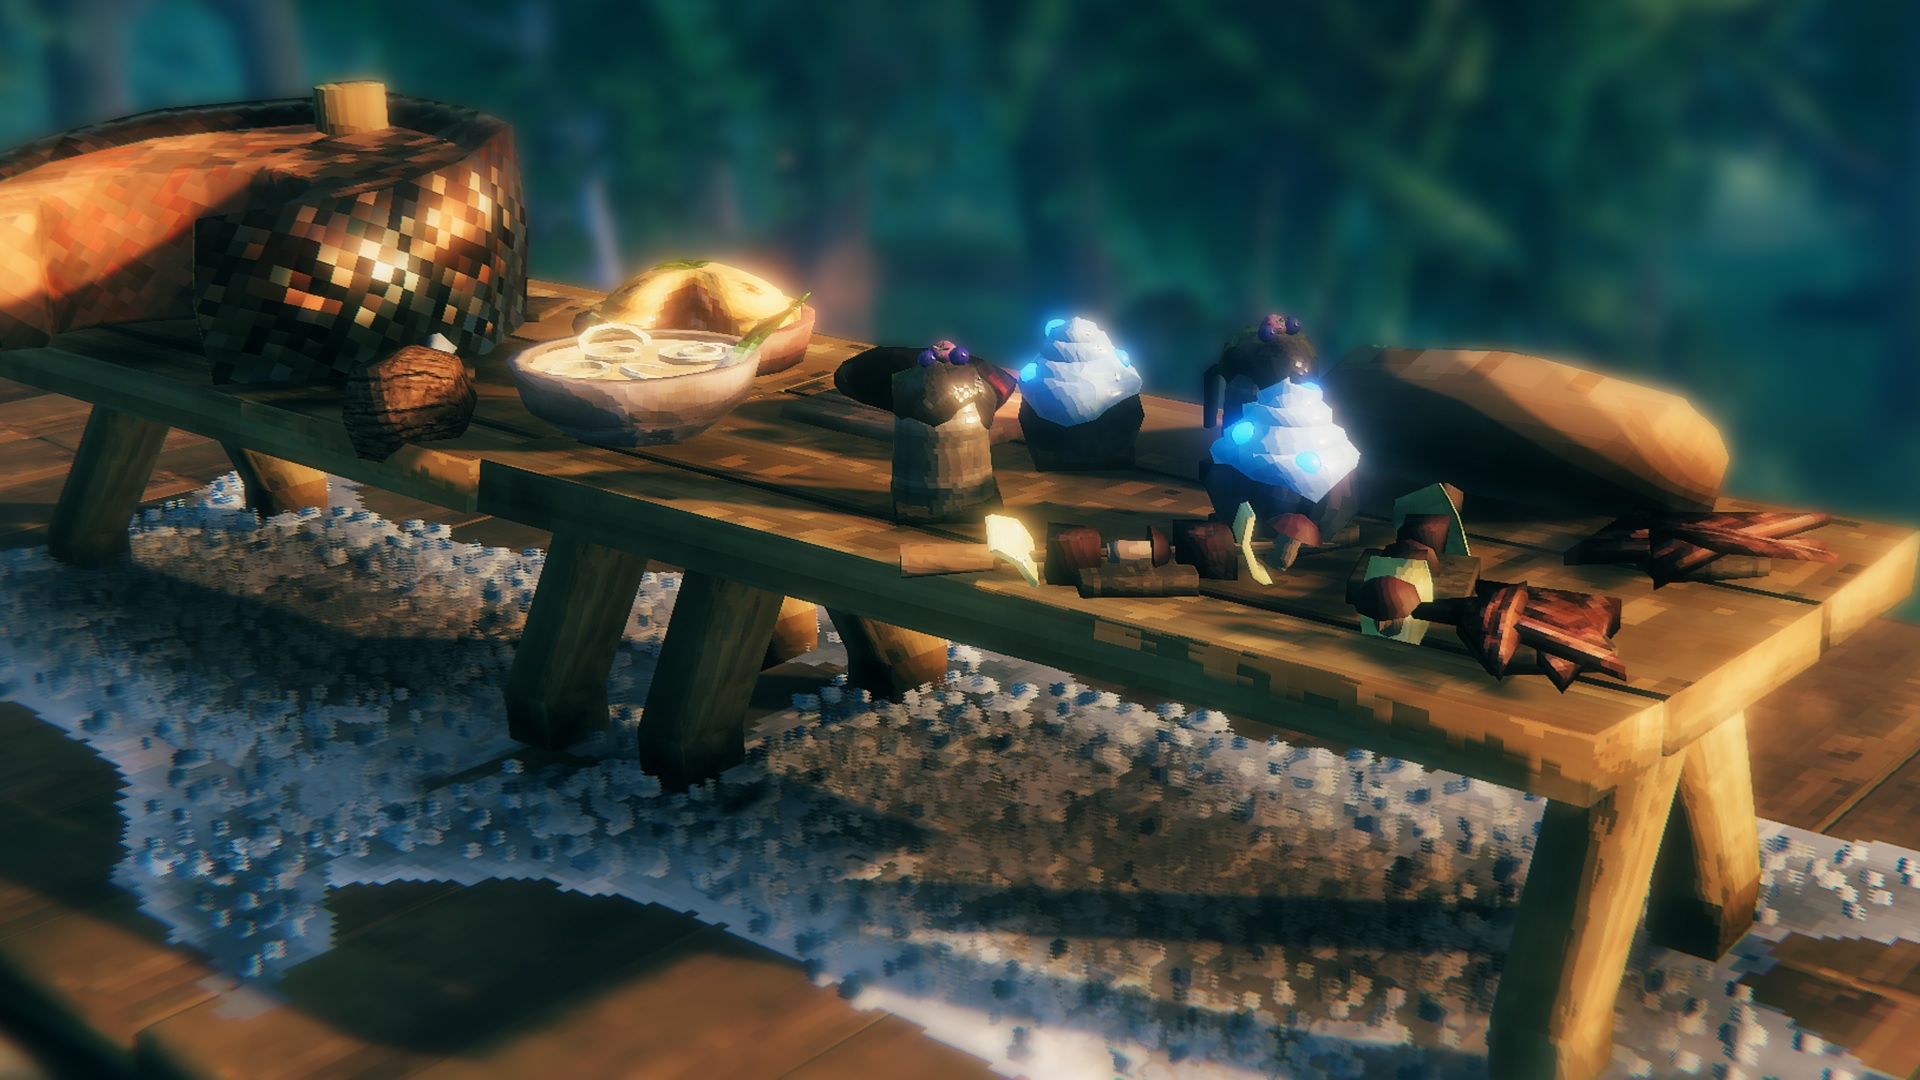 Valheim Hearth and Home update - a table full of new food items